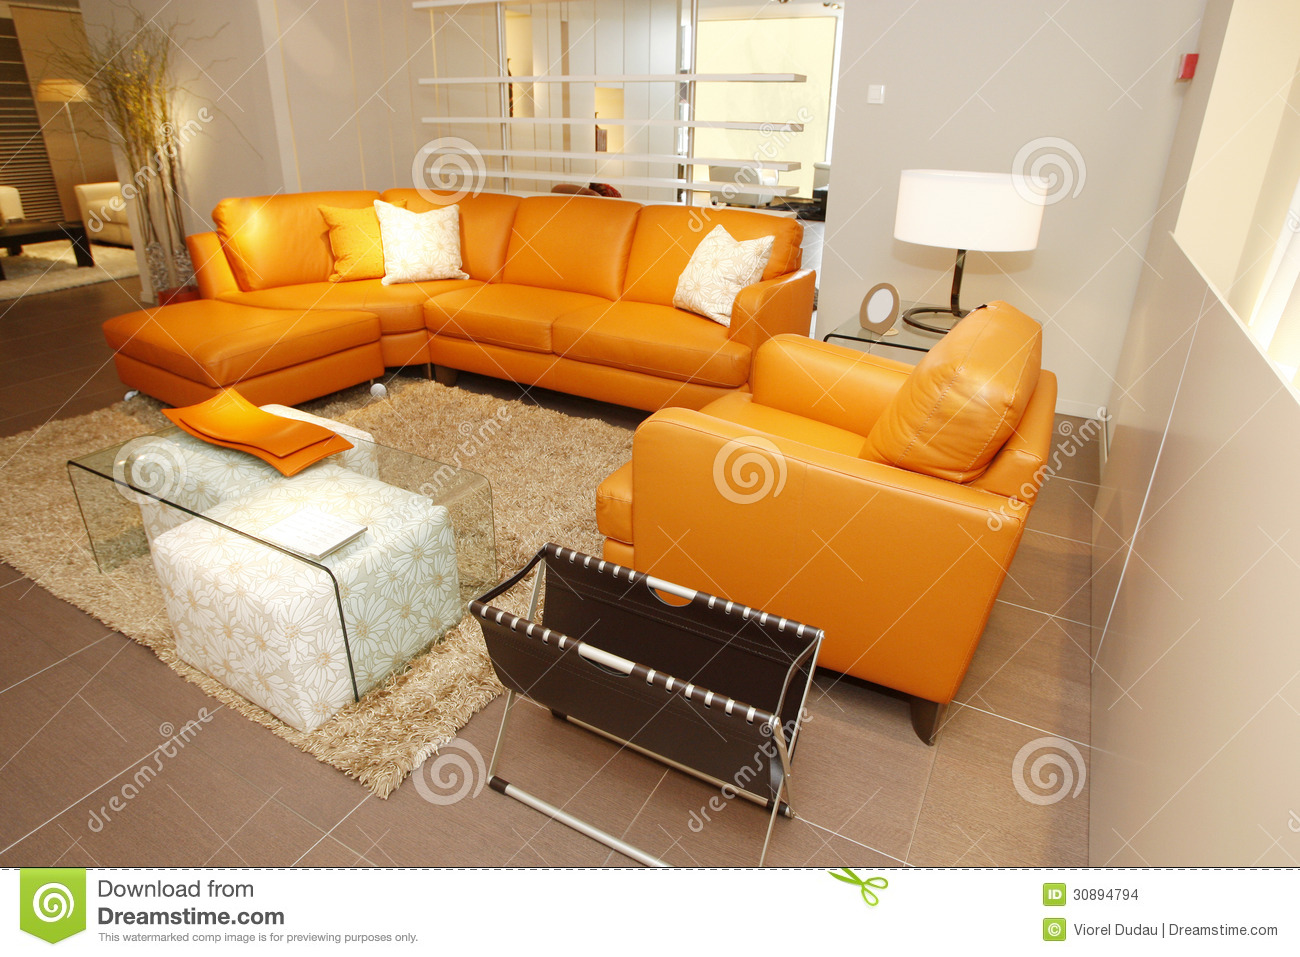 living couch lounge furniture sofa rug area sofas western four of style in ideas leather inspiration room chaise seat interior orange balcony with